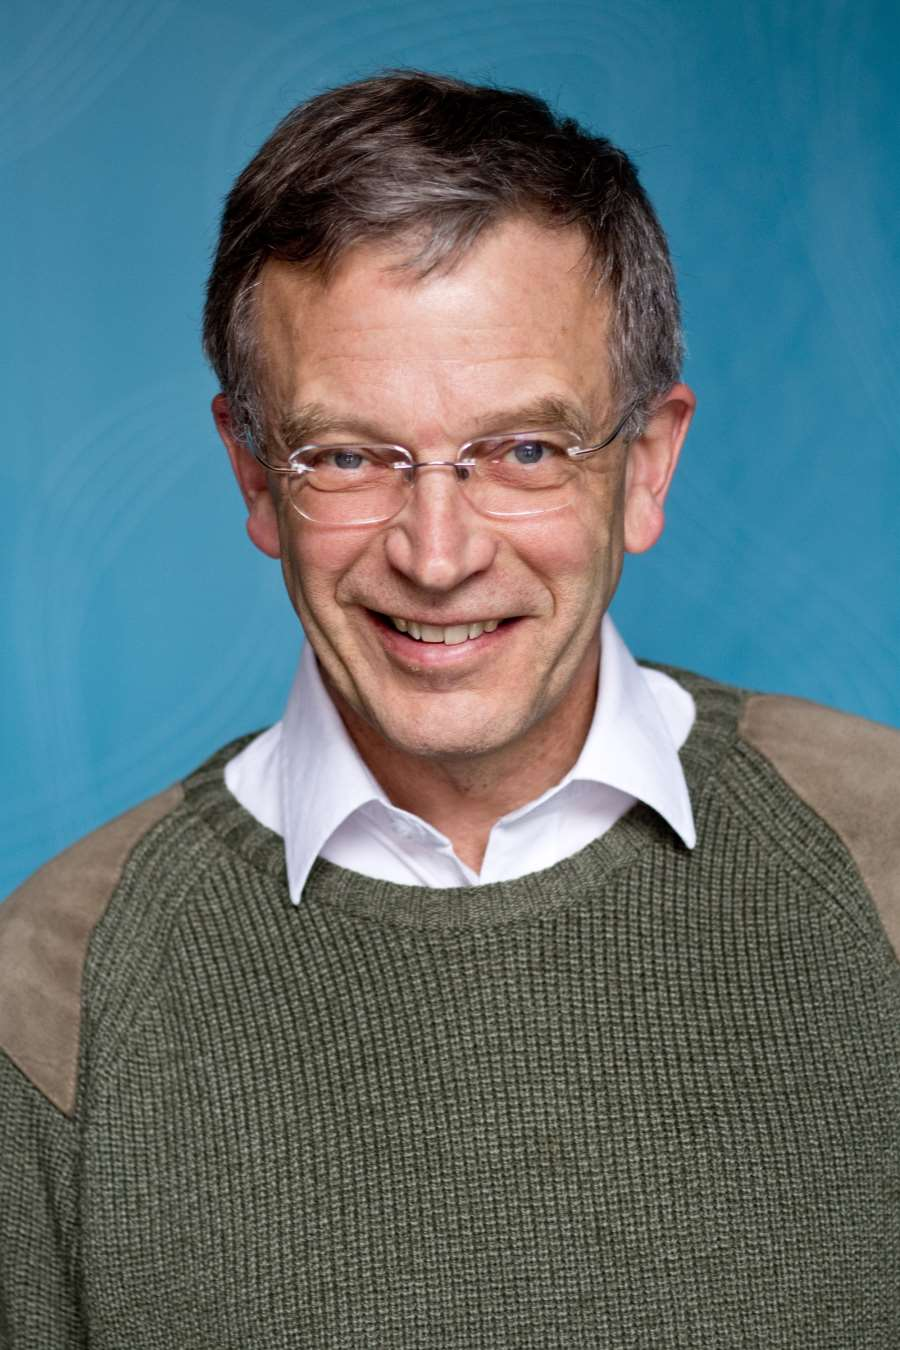 Stein Tønnesson Admitted to the Norwegian Academy of Science and Letters